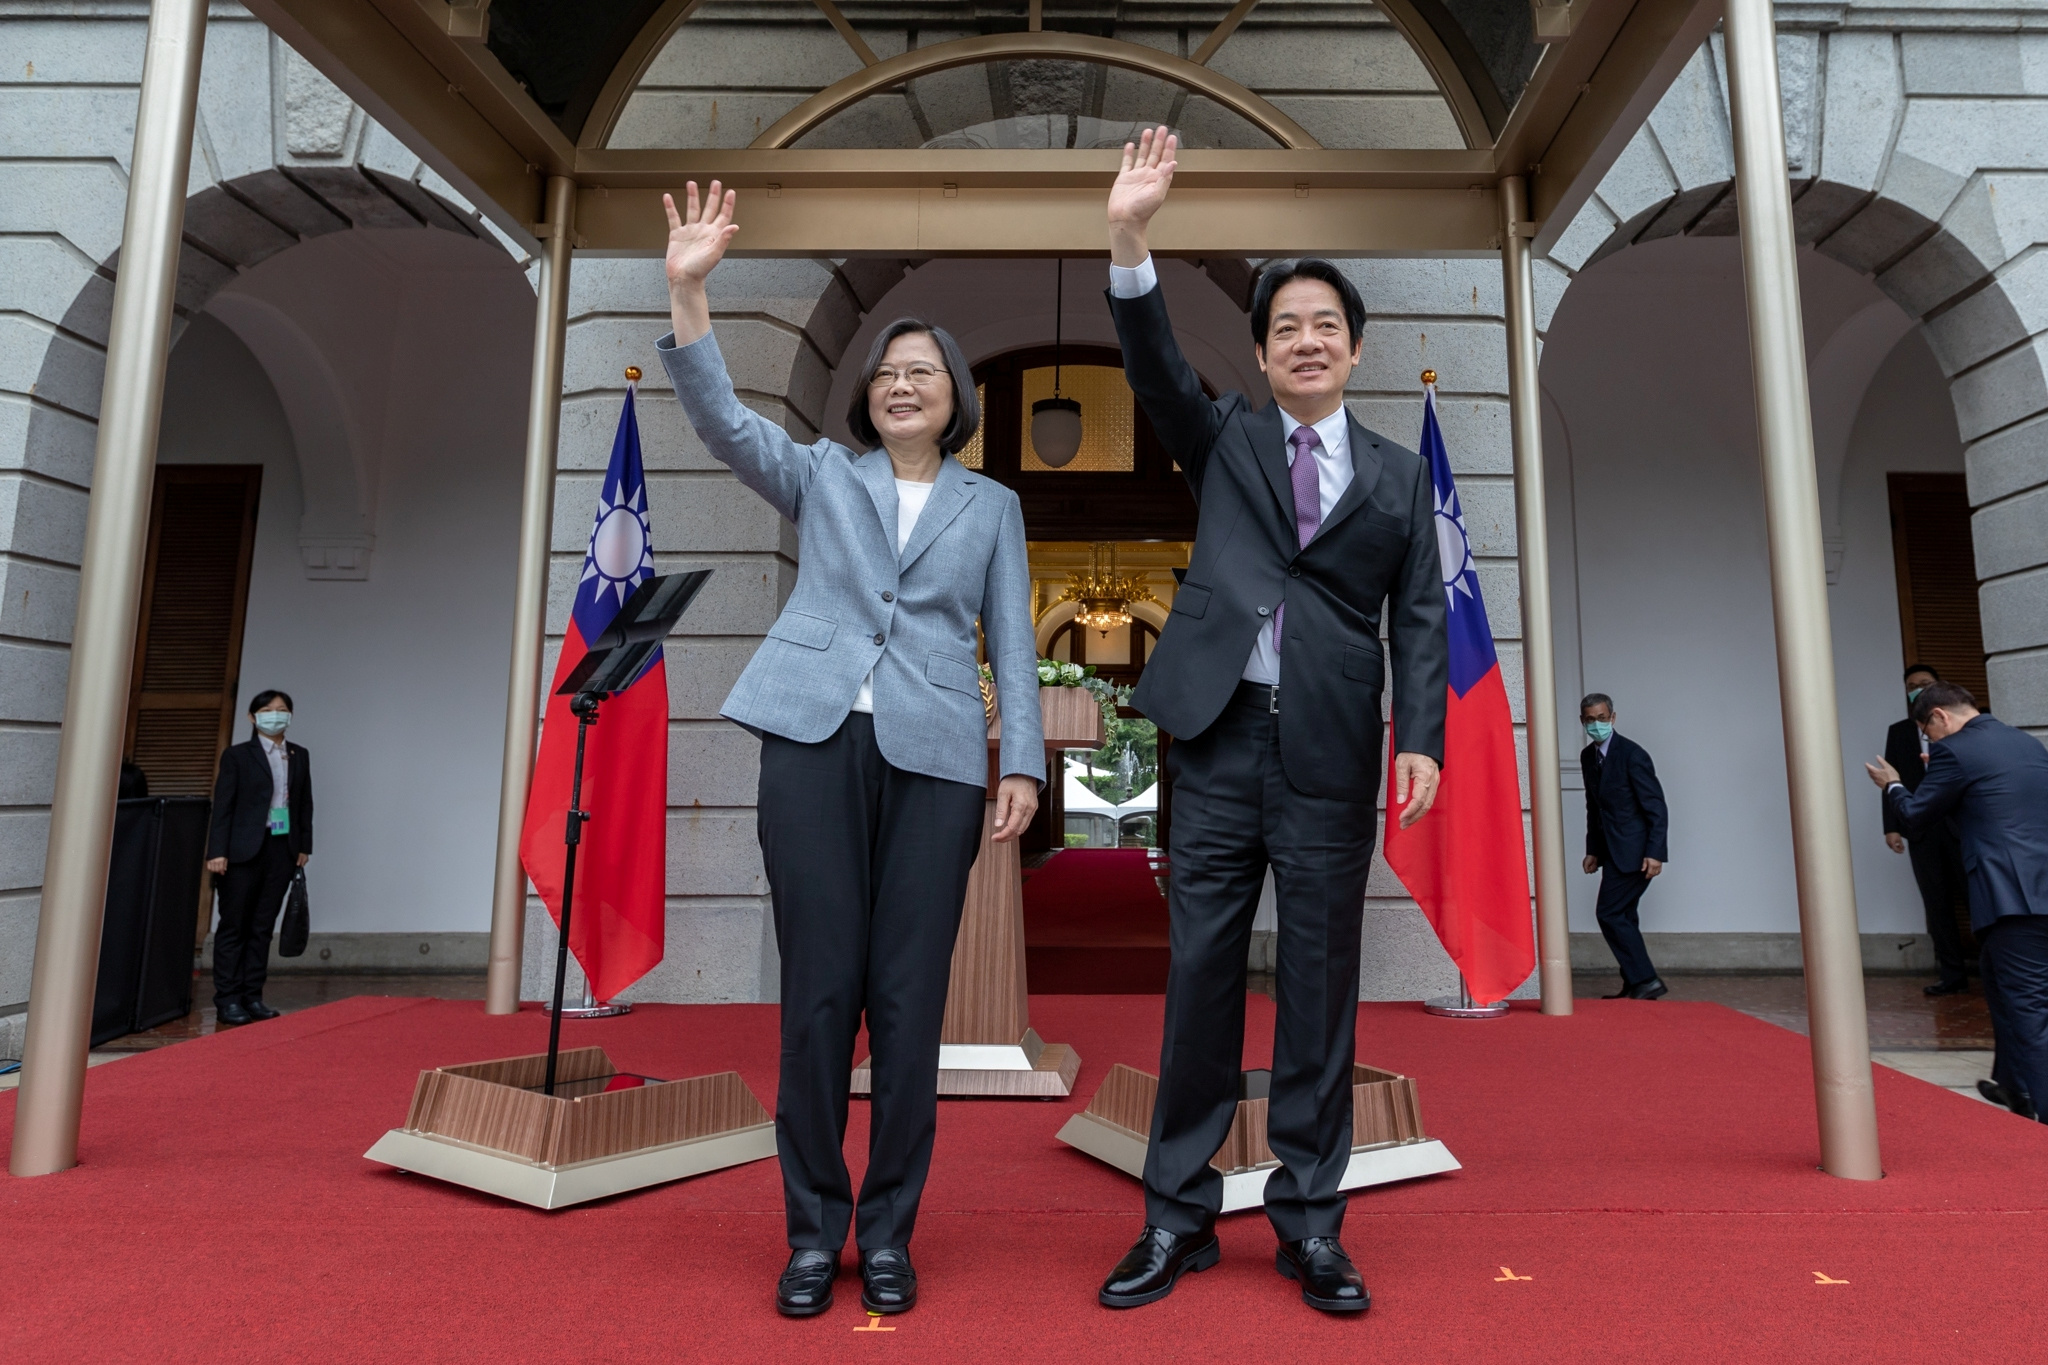 Taiwan President Tsai Ing-wen attends with Vice President William Lai Ching-te her inaugural address at the Taipei Guest House in Taipei on May 20. | HANDOUT / VIA REUTERS